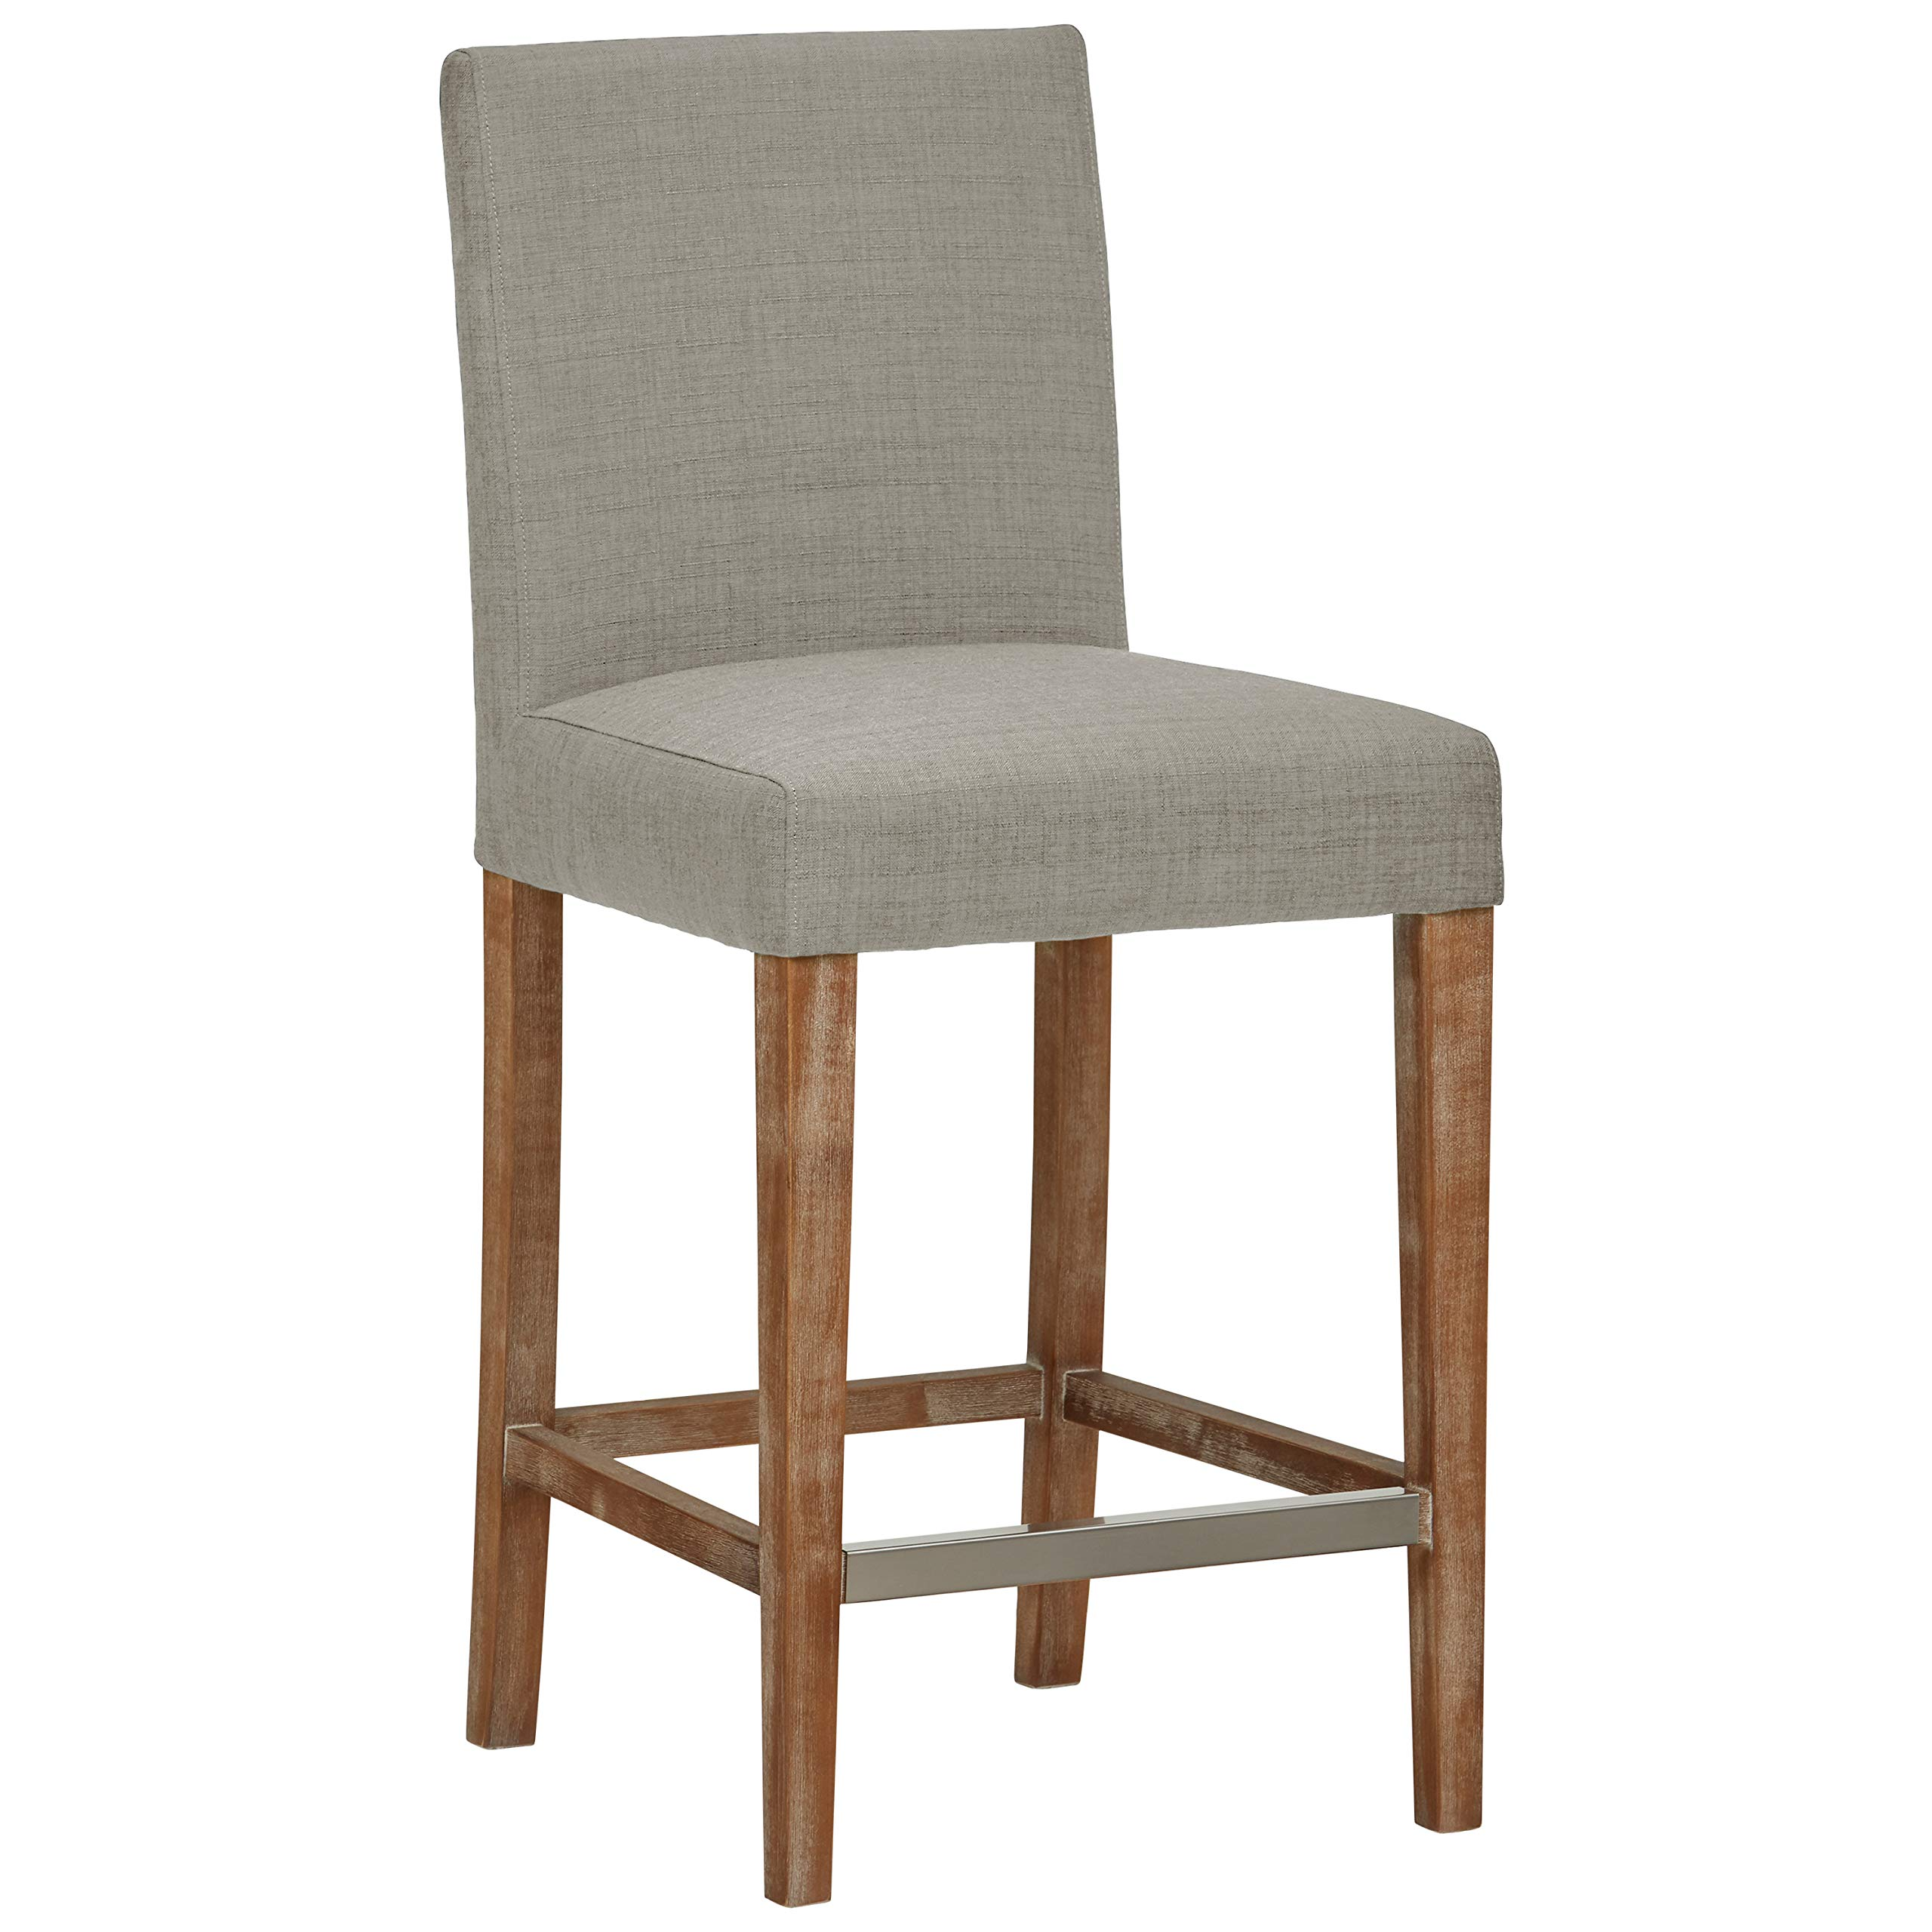 Stone & Beam Hartford Modern Denim-Style Fabric Kitchen Counter Bar Stool, 40.5''H, Dove Grey by Stone & Beam